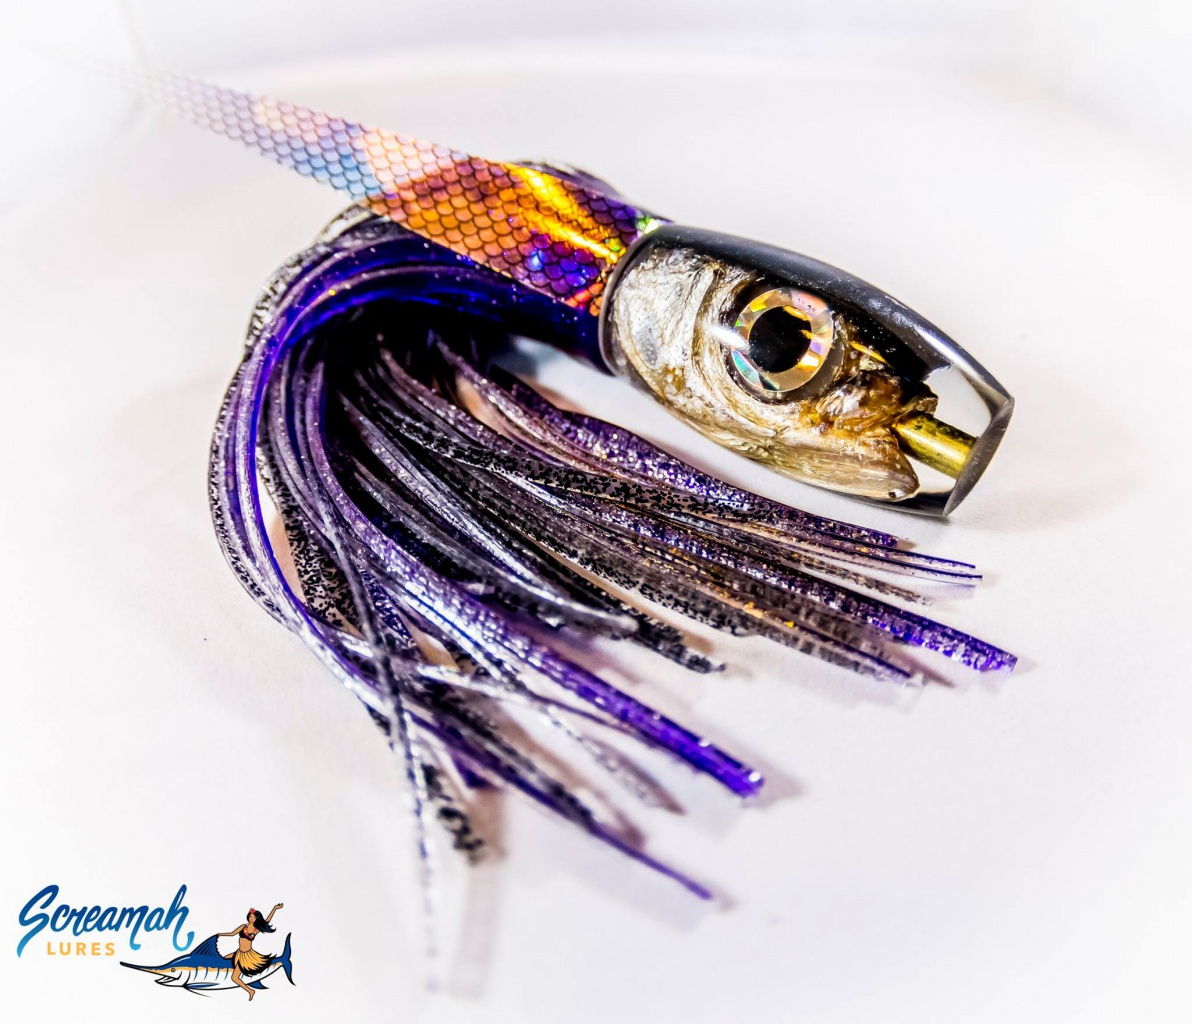 Screamah Lures Now Available at J&M-1-jpg